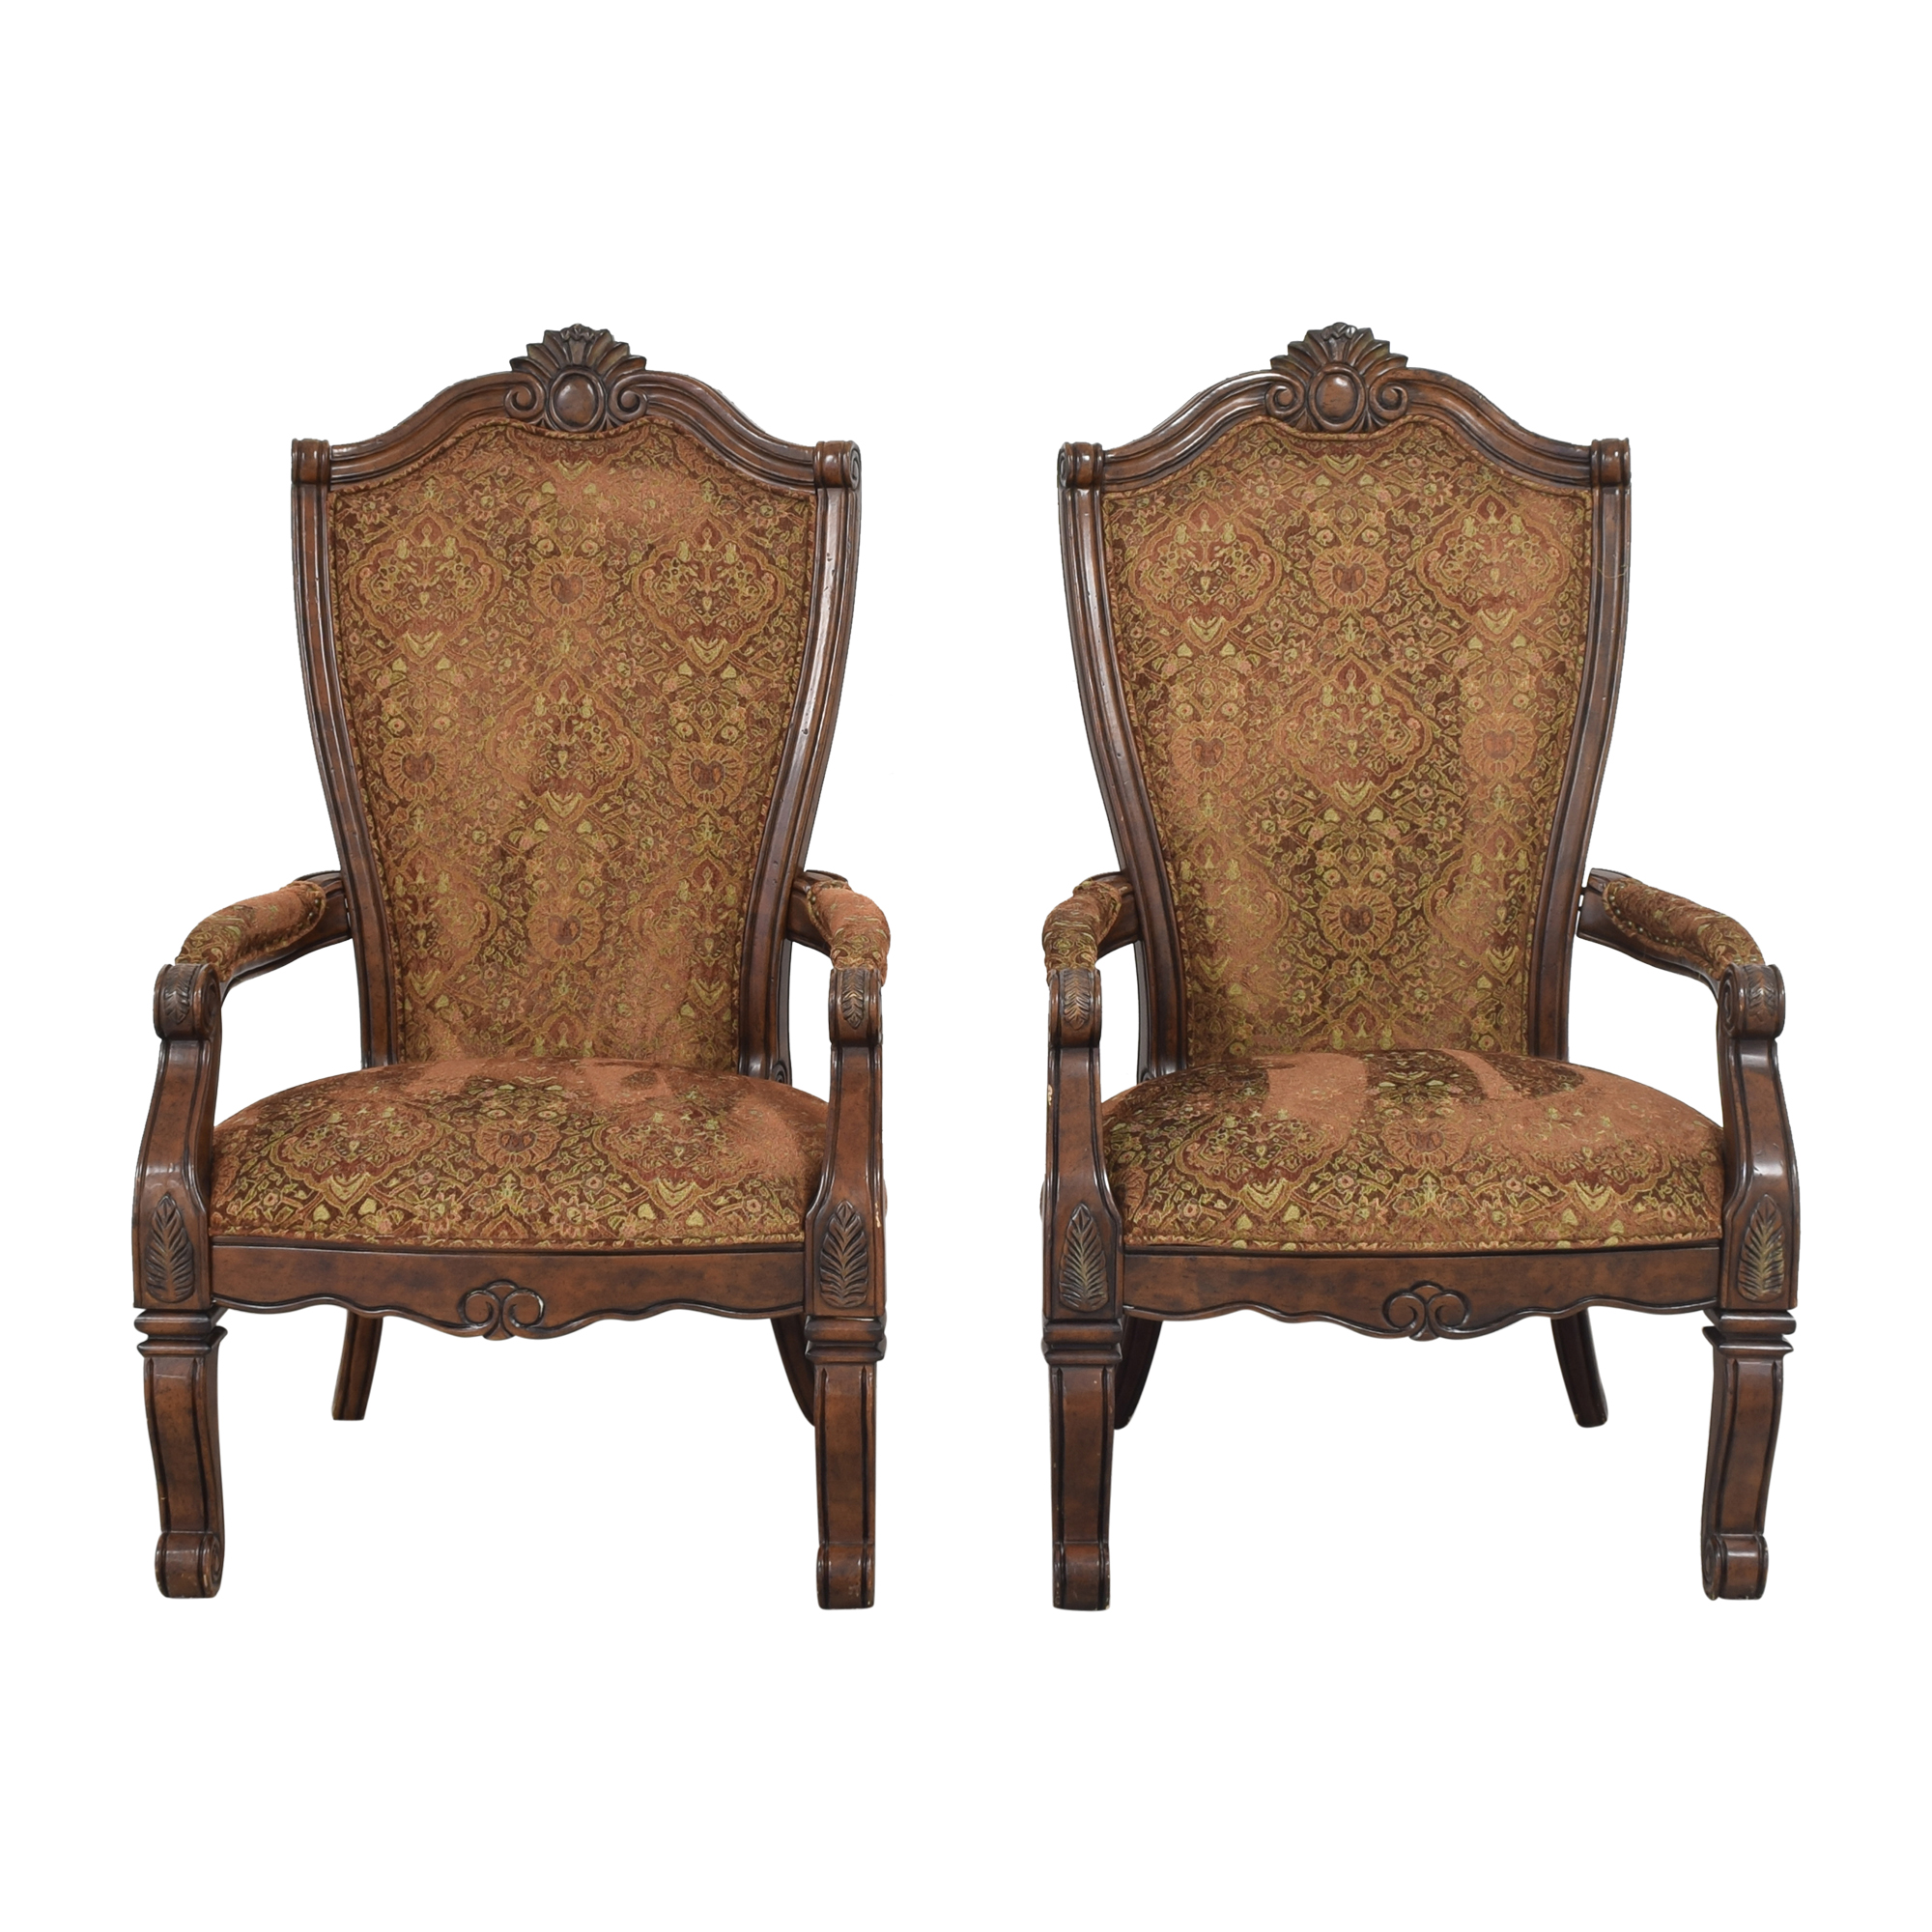 AICO AICO Windsor Court Dining Arm Chairs ct